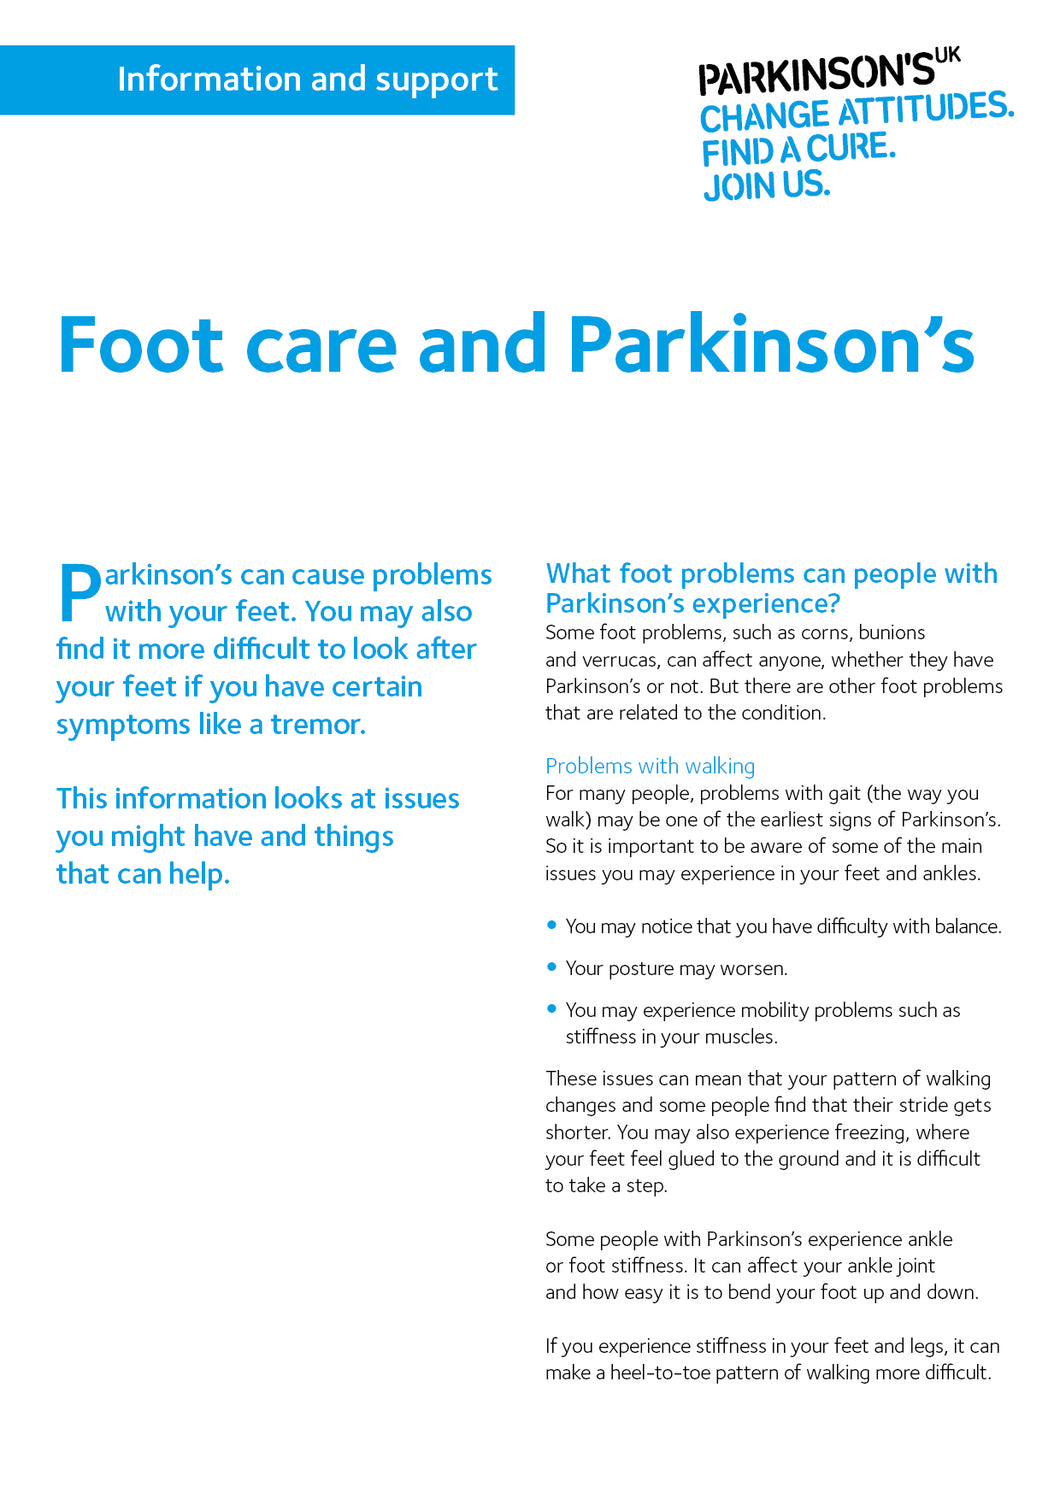 Foot care and Parkinson's - Parkinson's shop